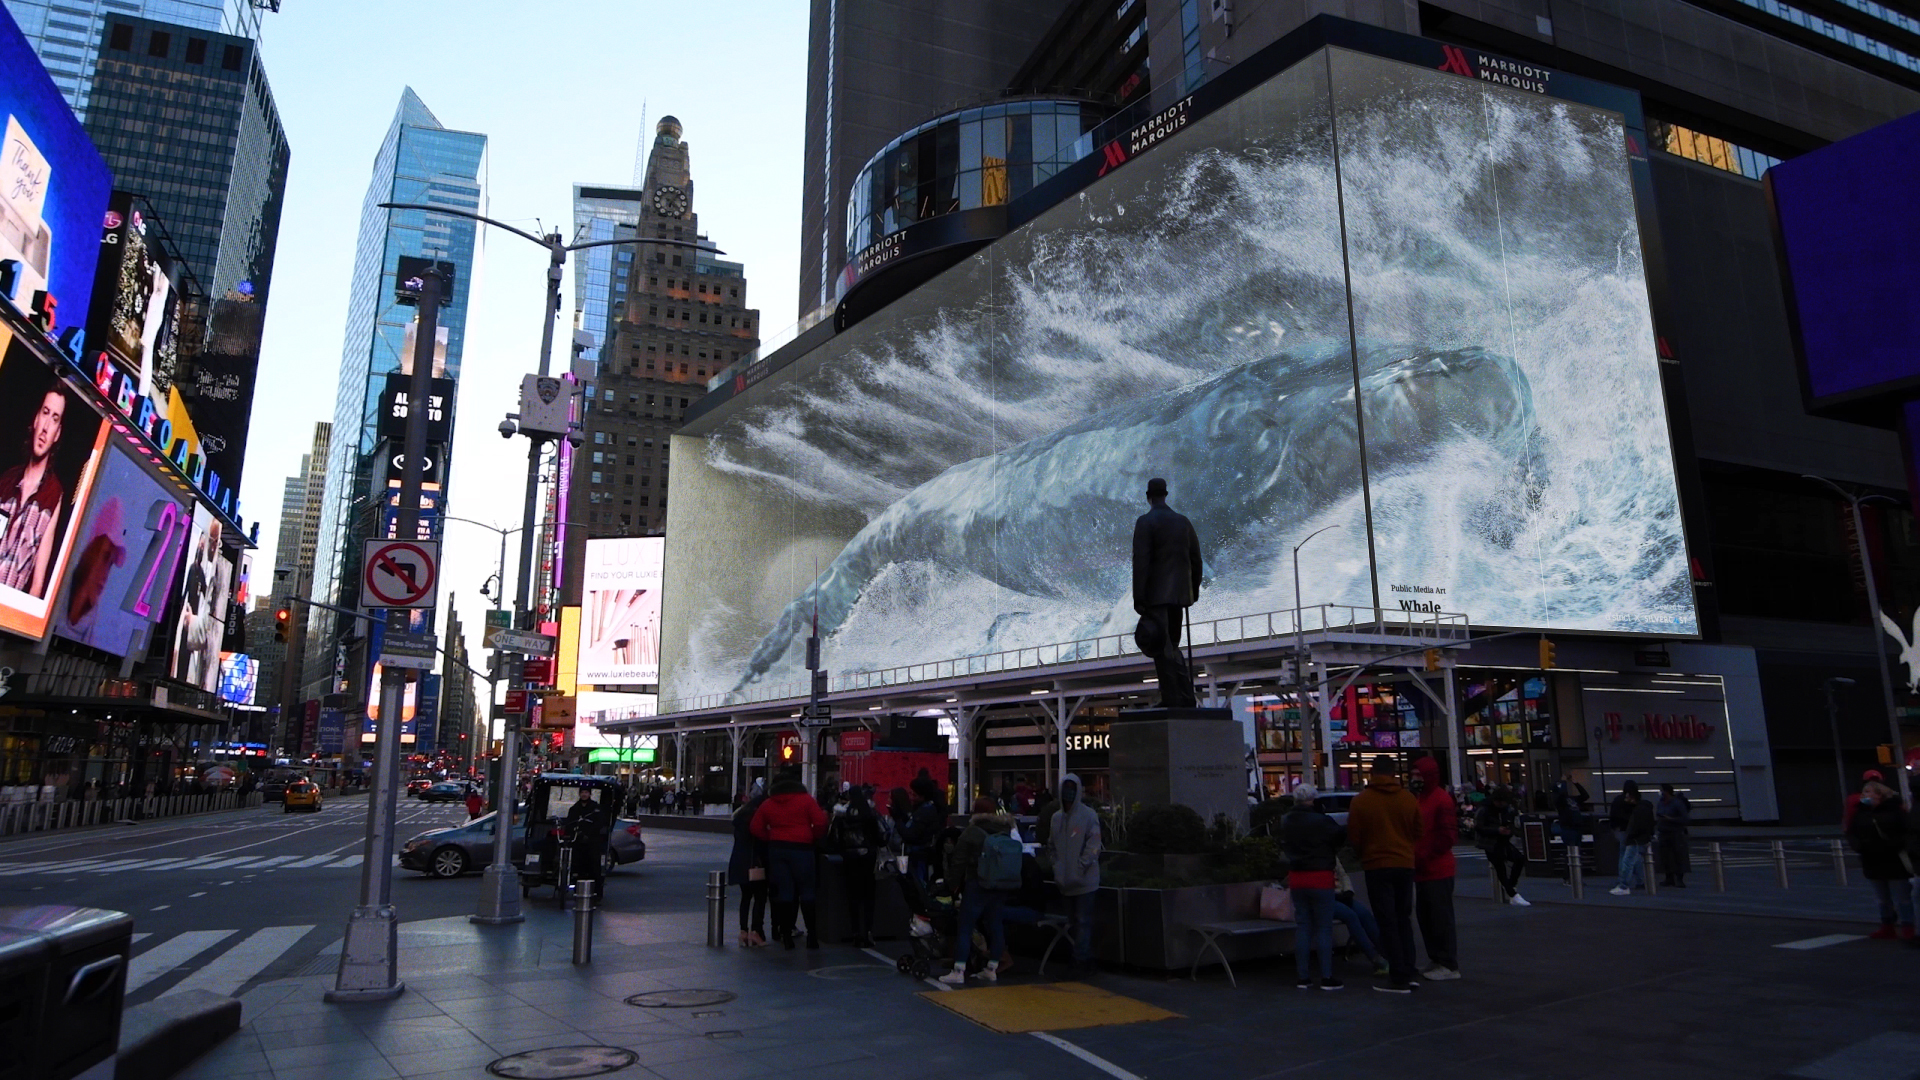 Whale 2 Times Square